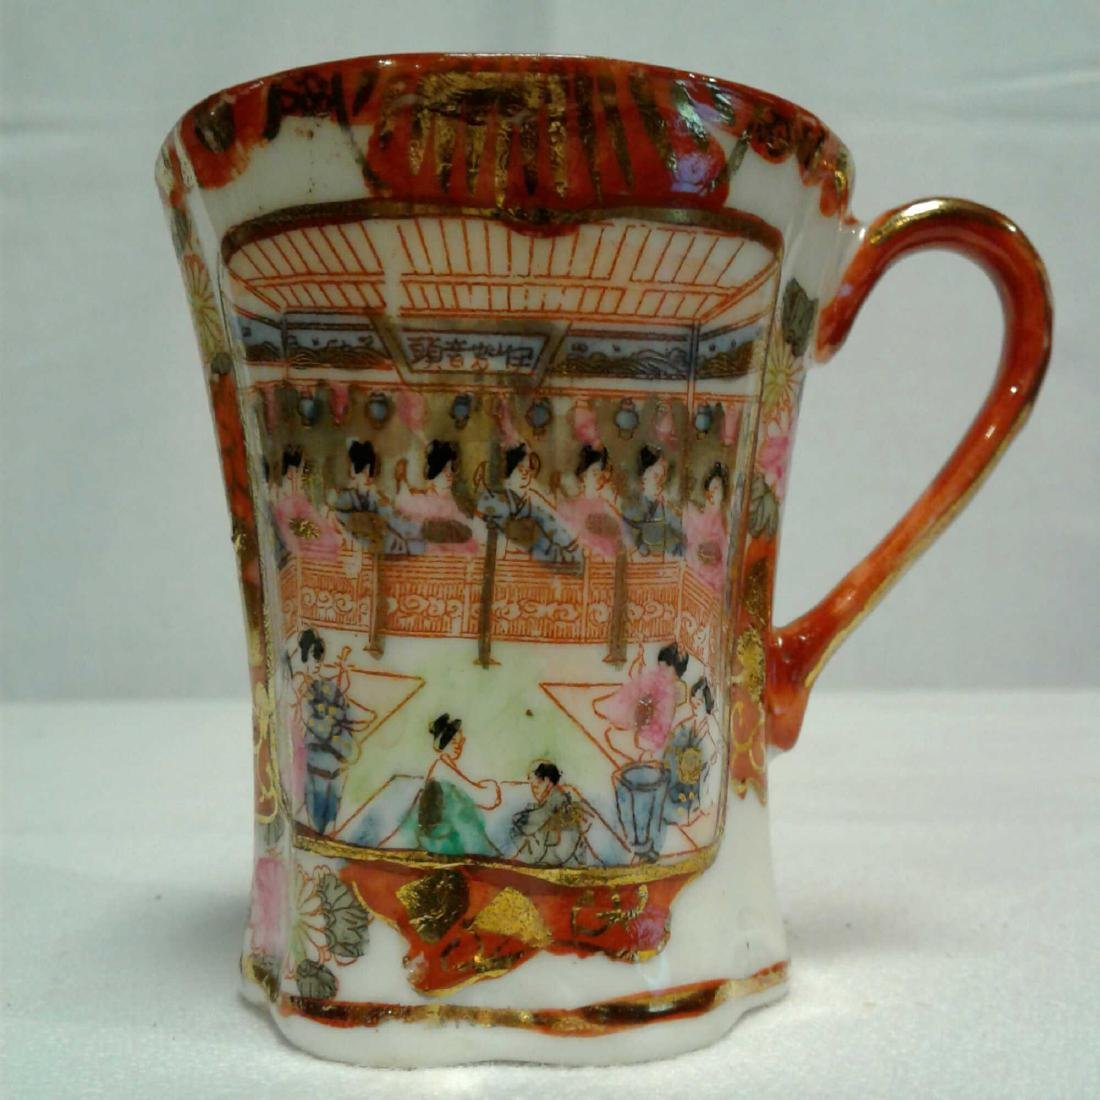 1 Bone China Coffee Cup, Hand Painted By Chinese Artist